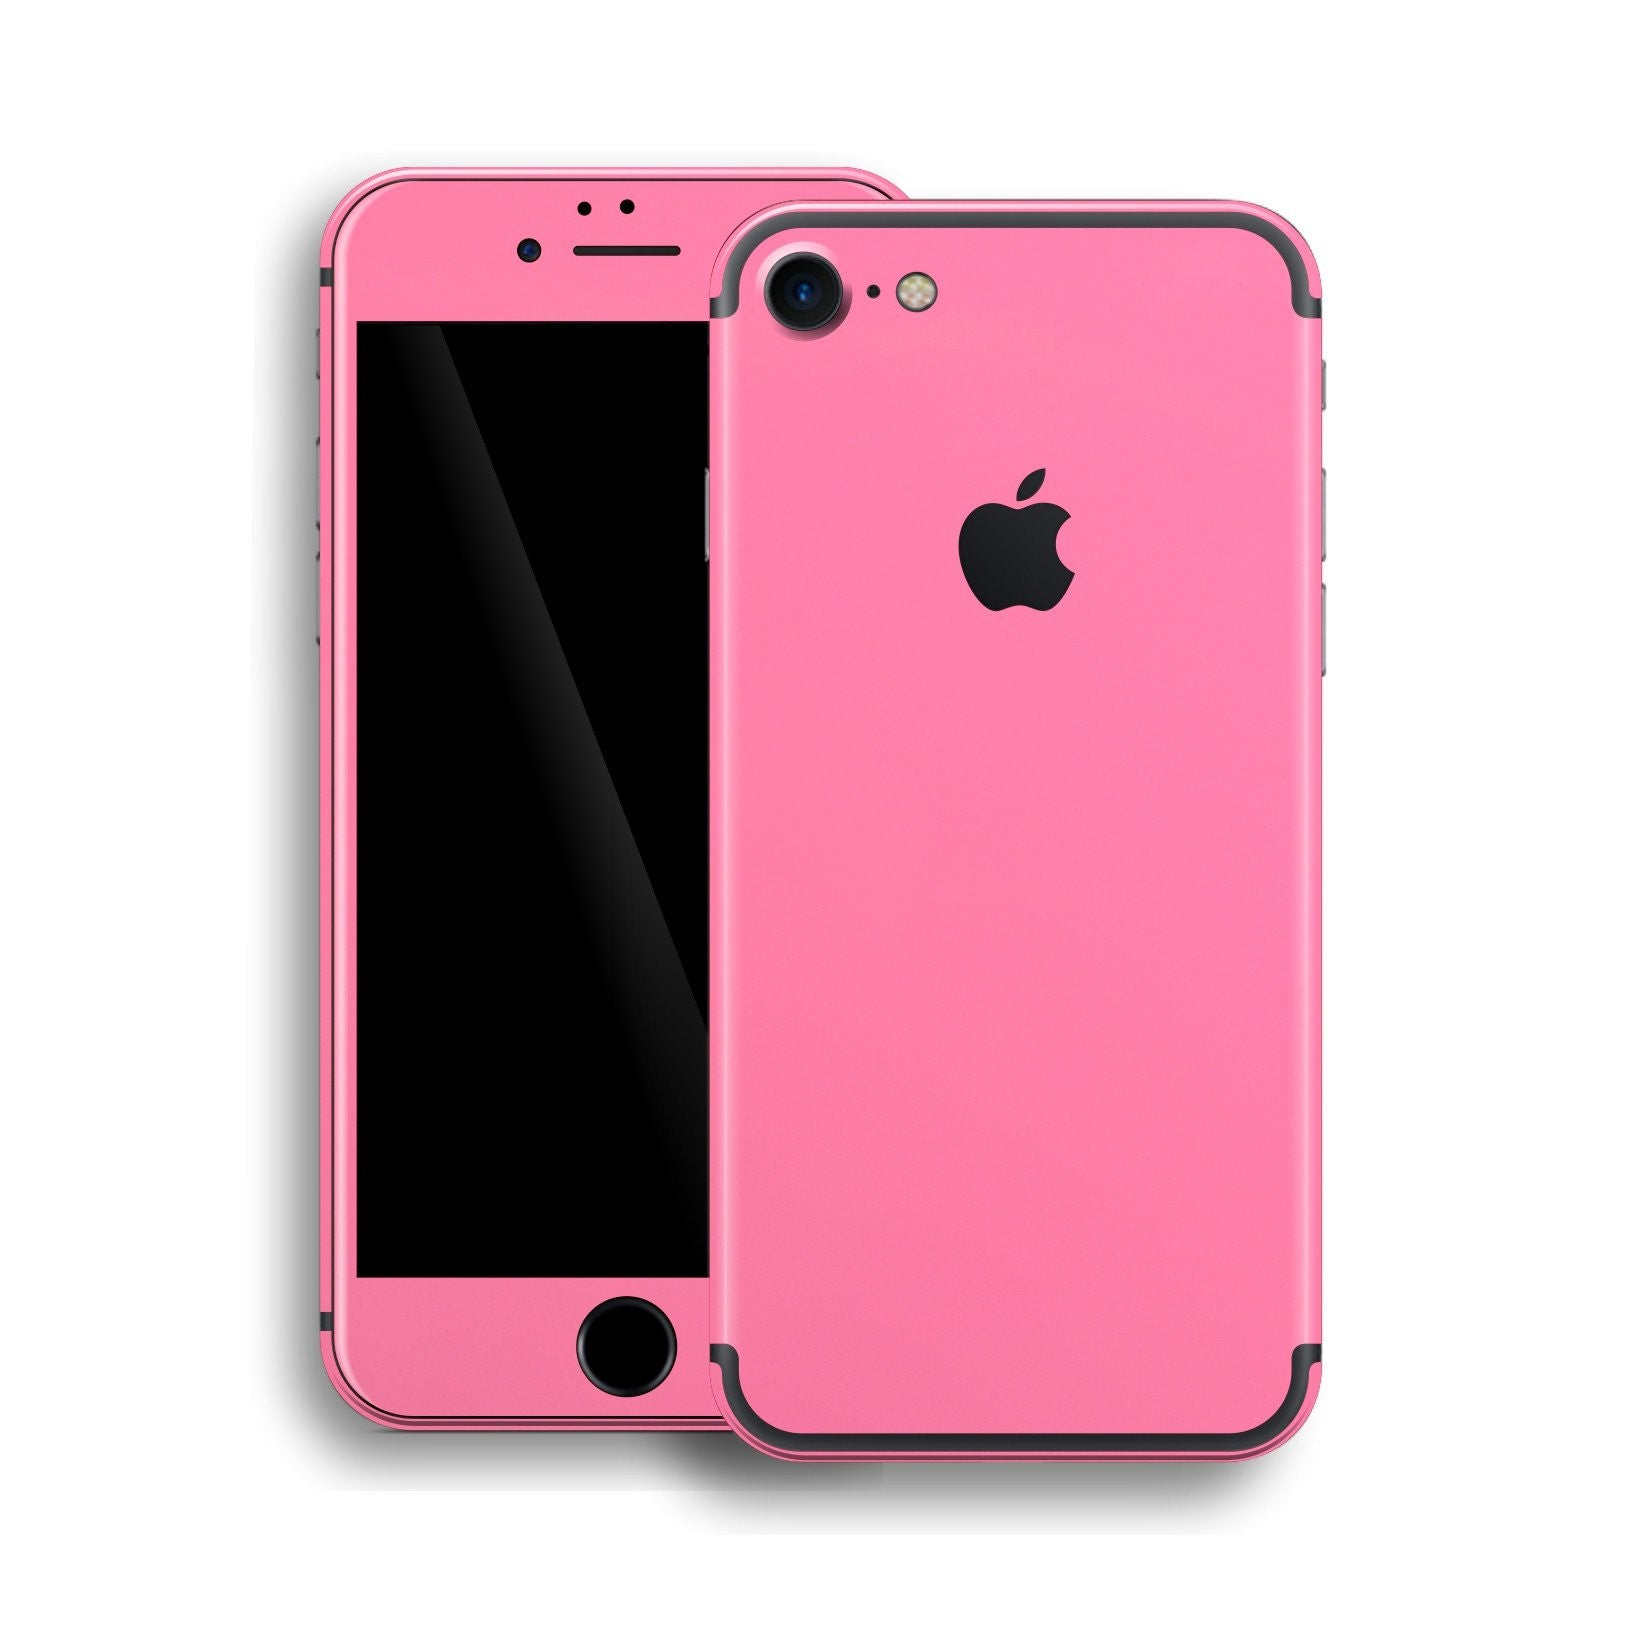 iPhone 7 Glossy Hot Pink Skin, Wrap, Decal, Protector, Cover by EasySkinz | EasySkinz.com